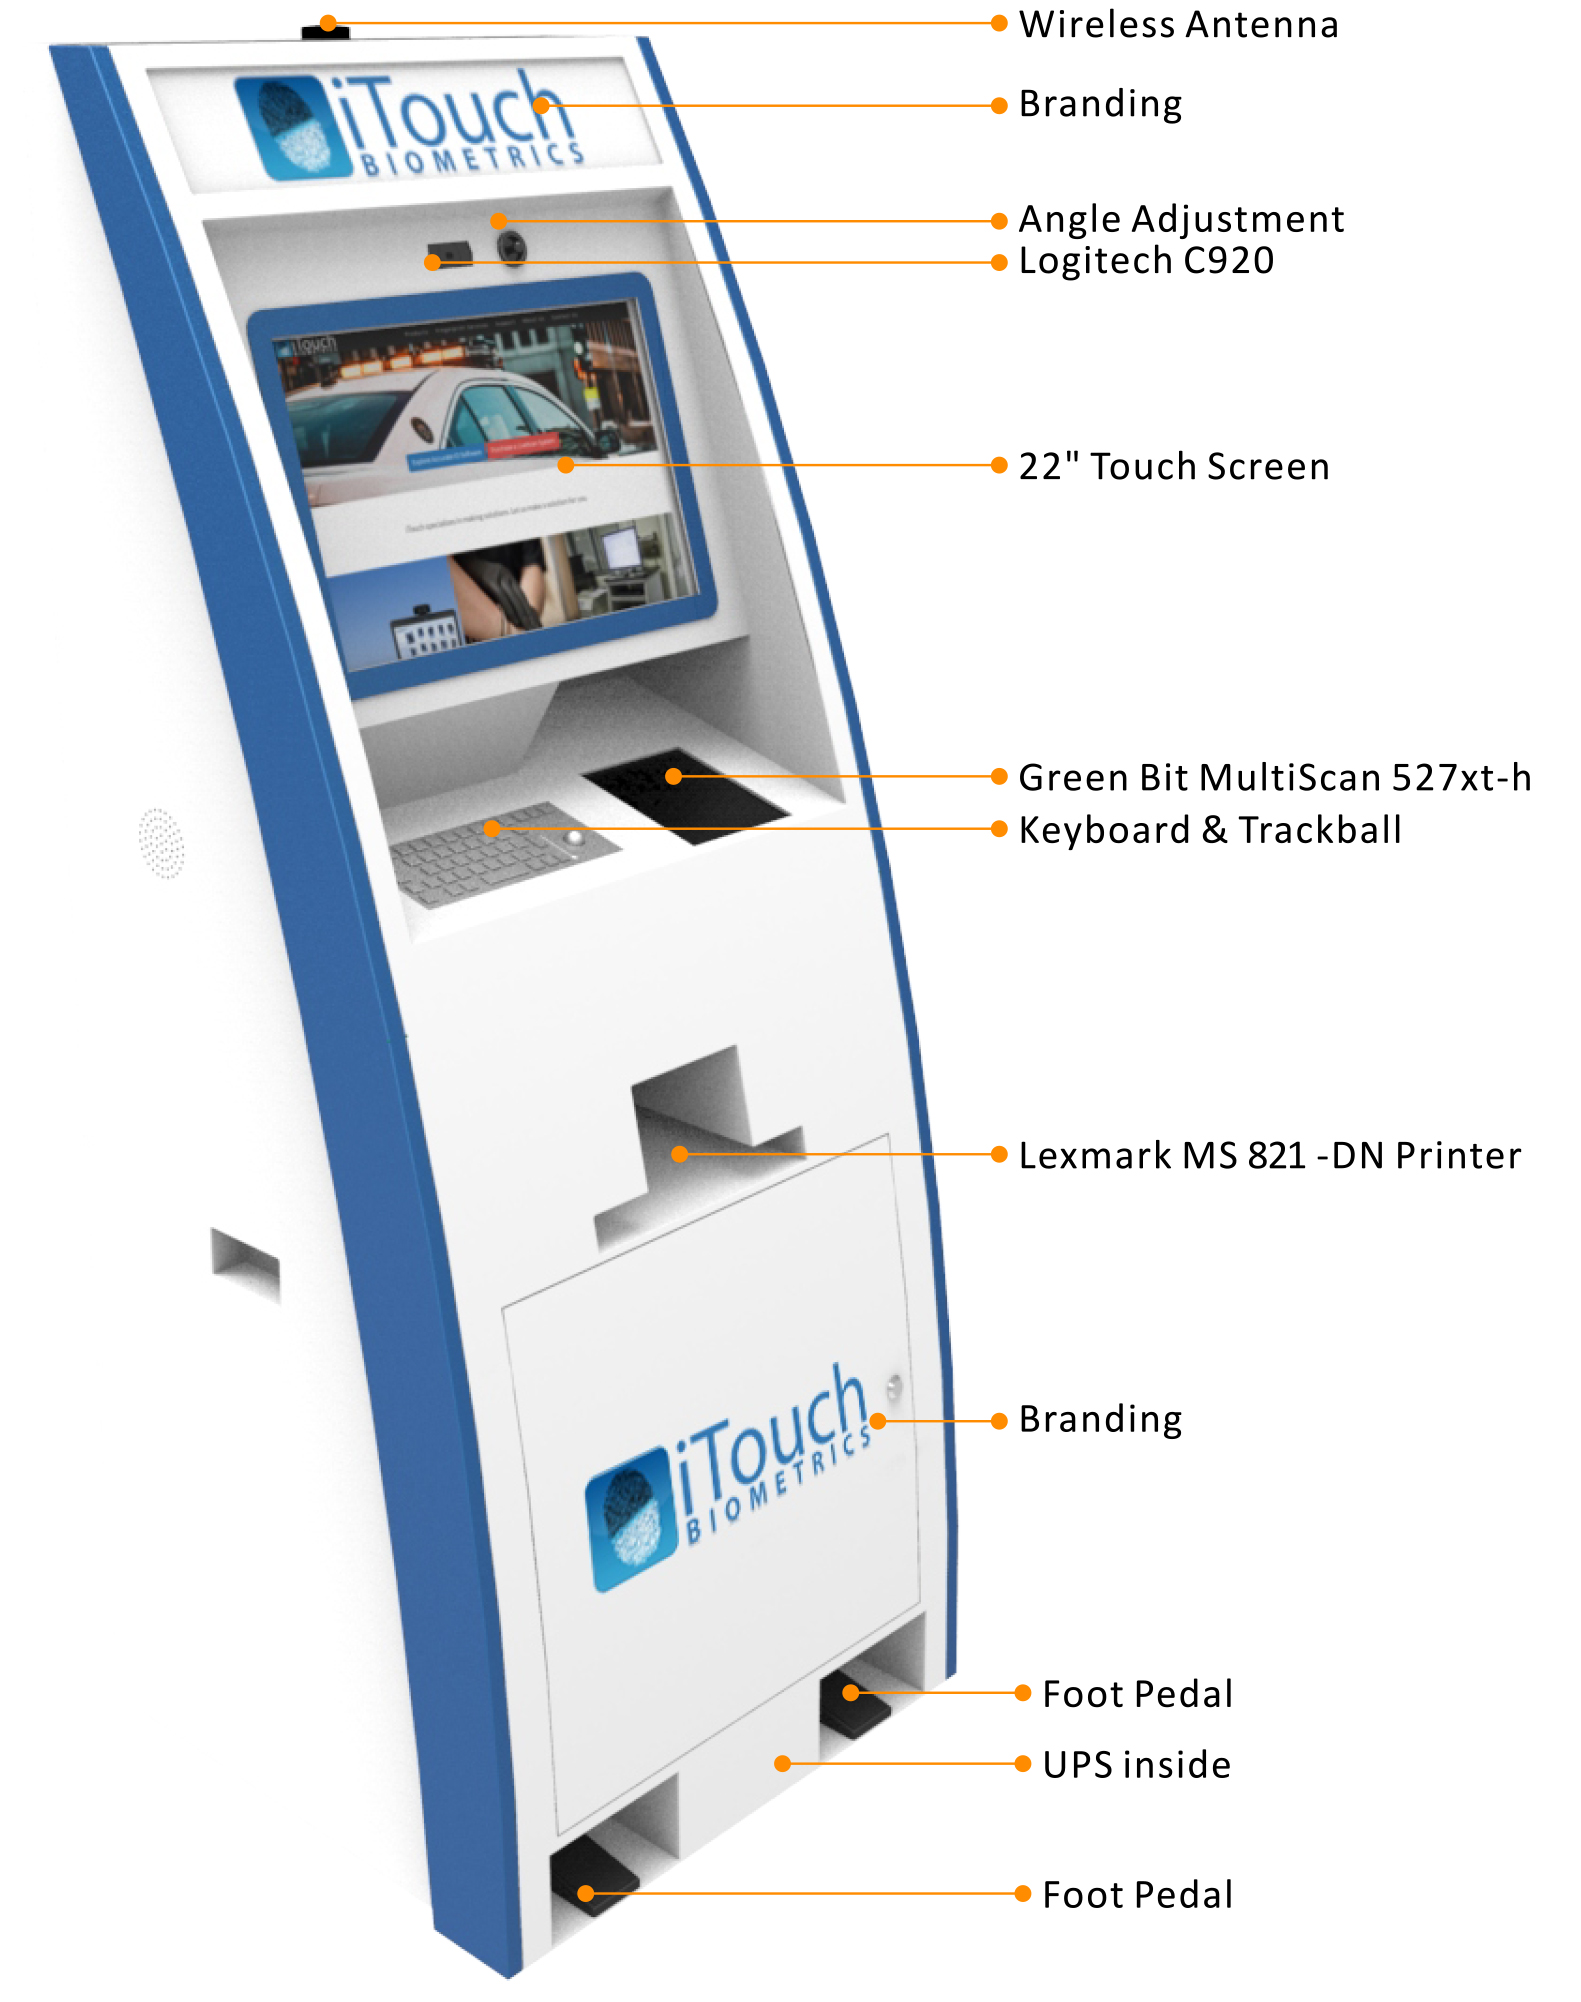 iTouch Biometrics — Booth 715